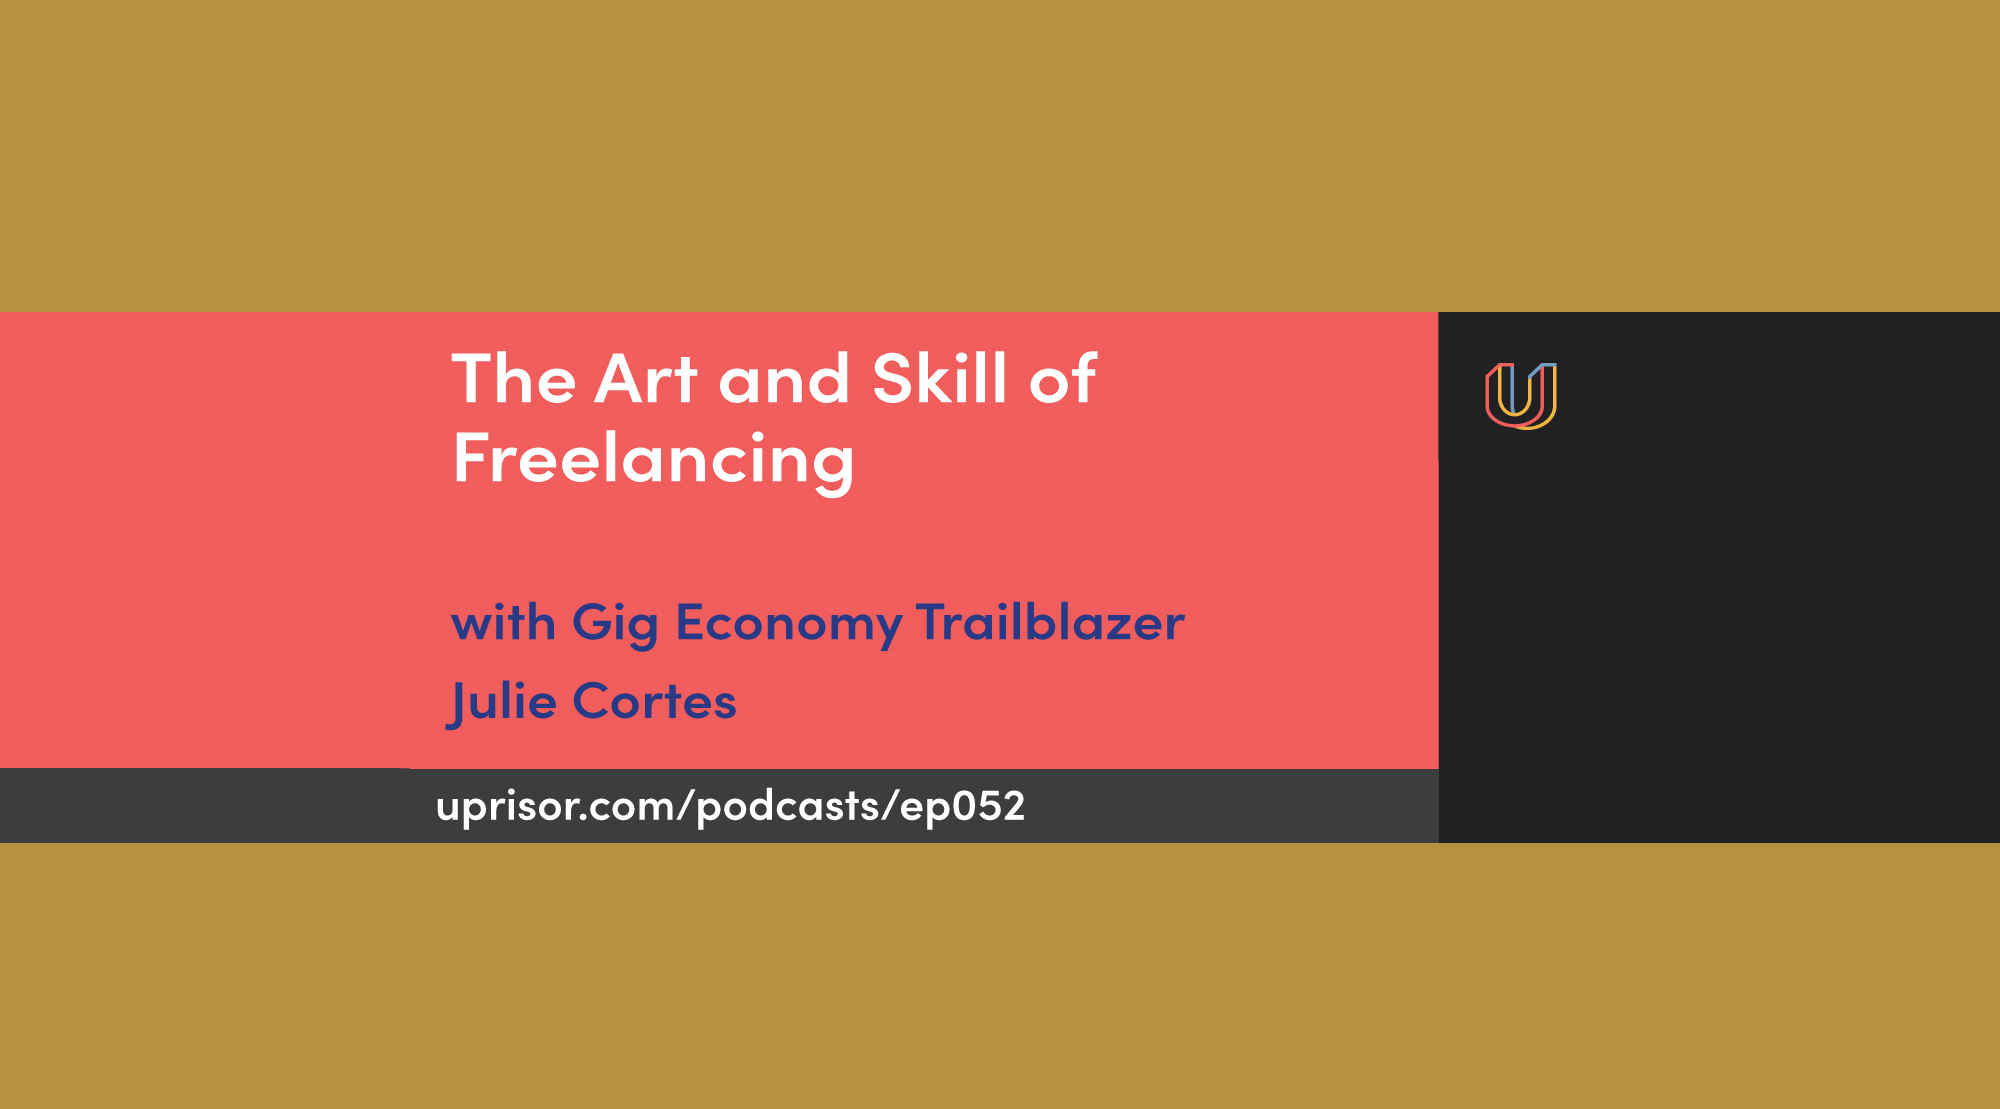 The Art and Skill of Freelancing: PODCAST